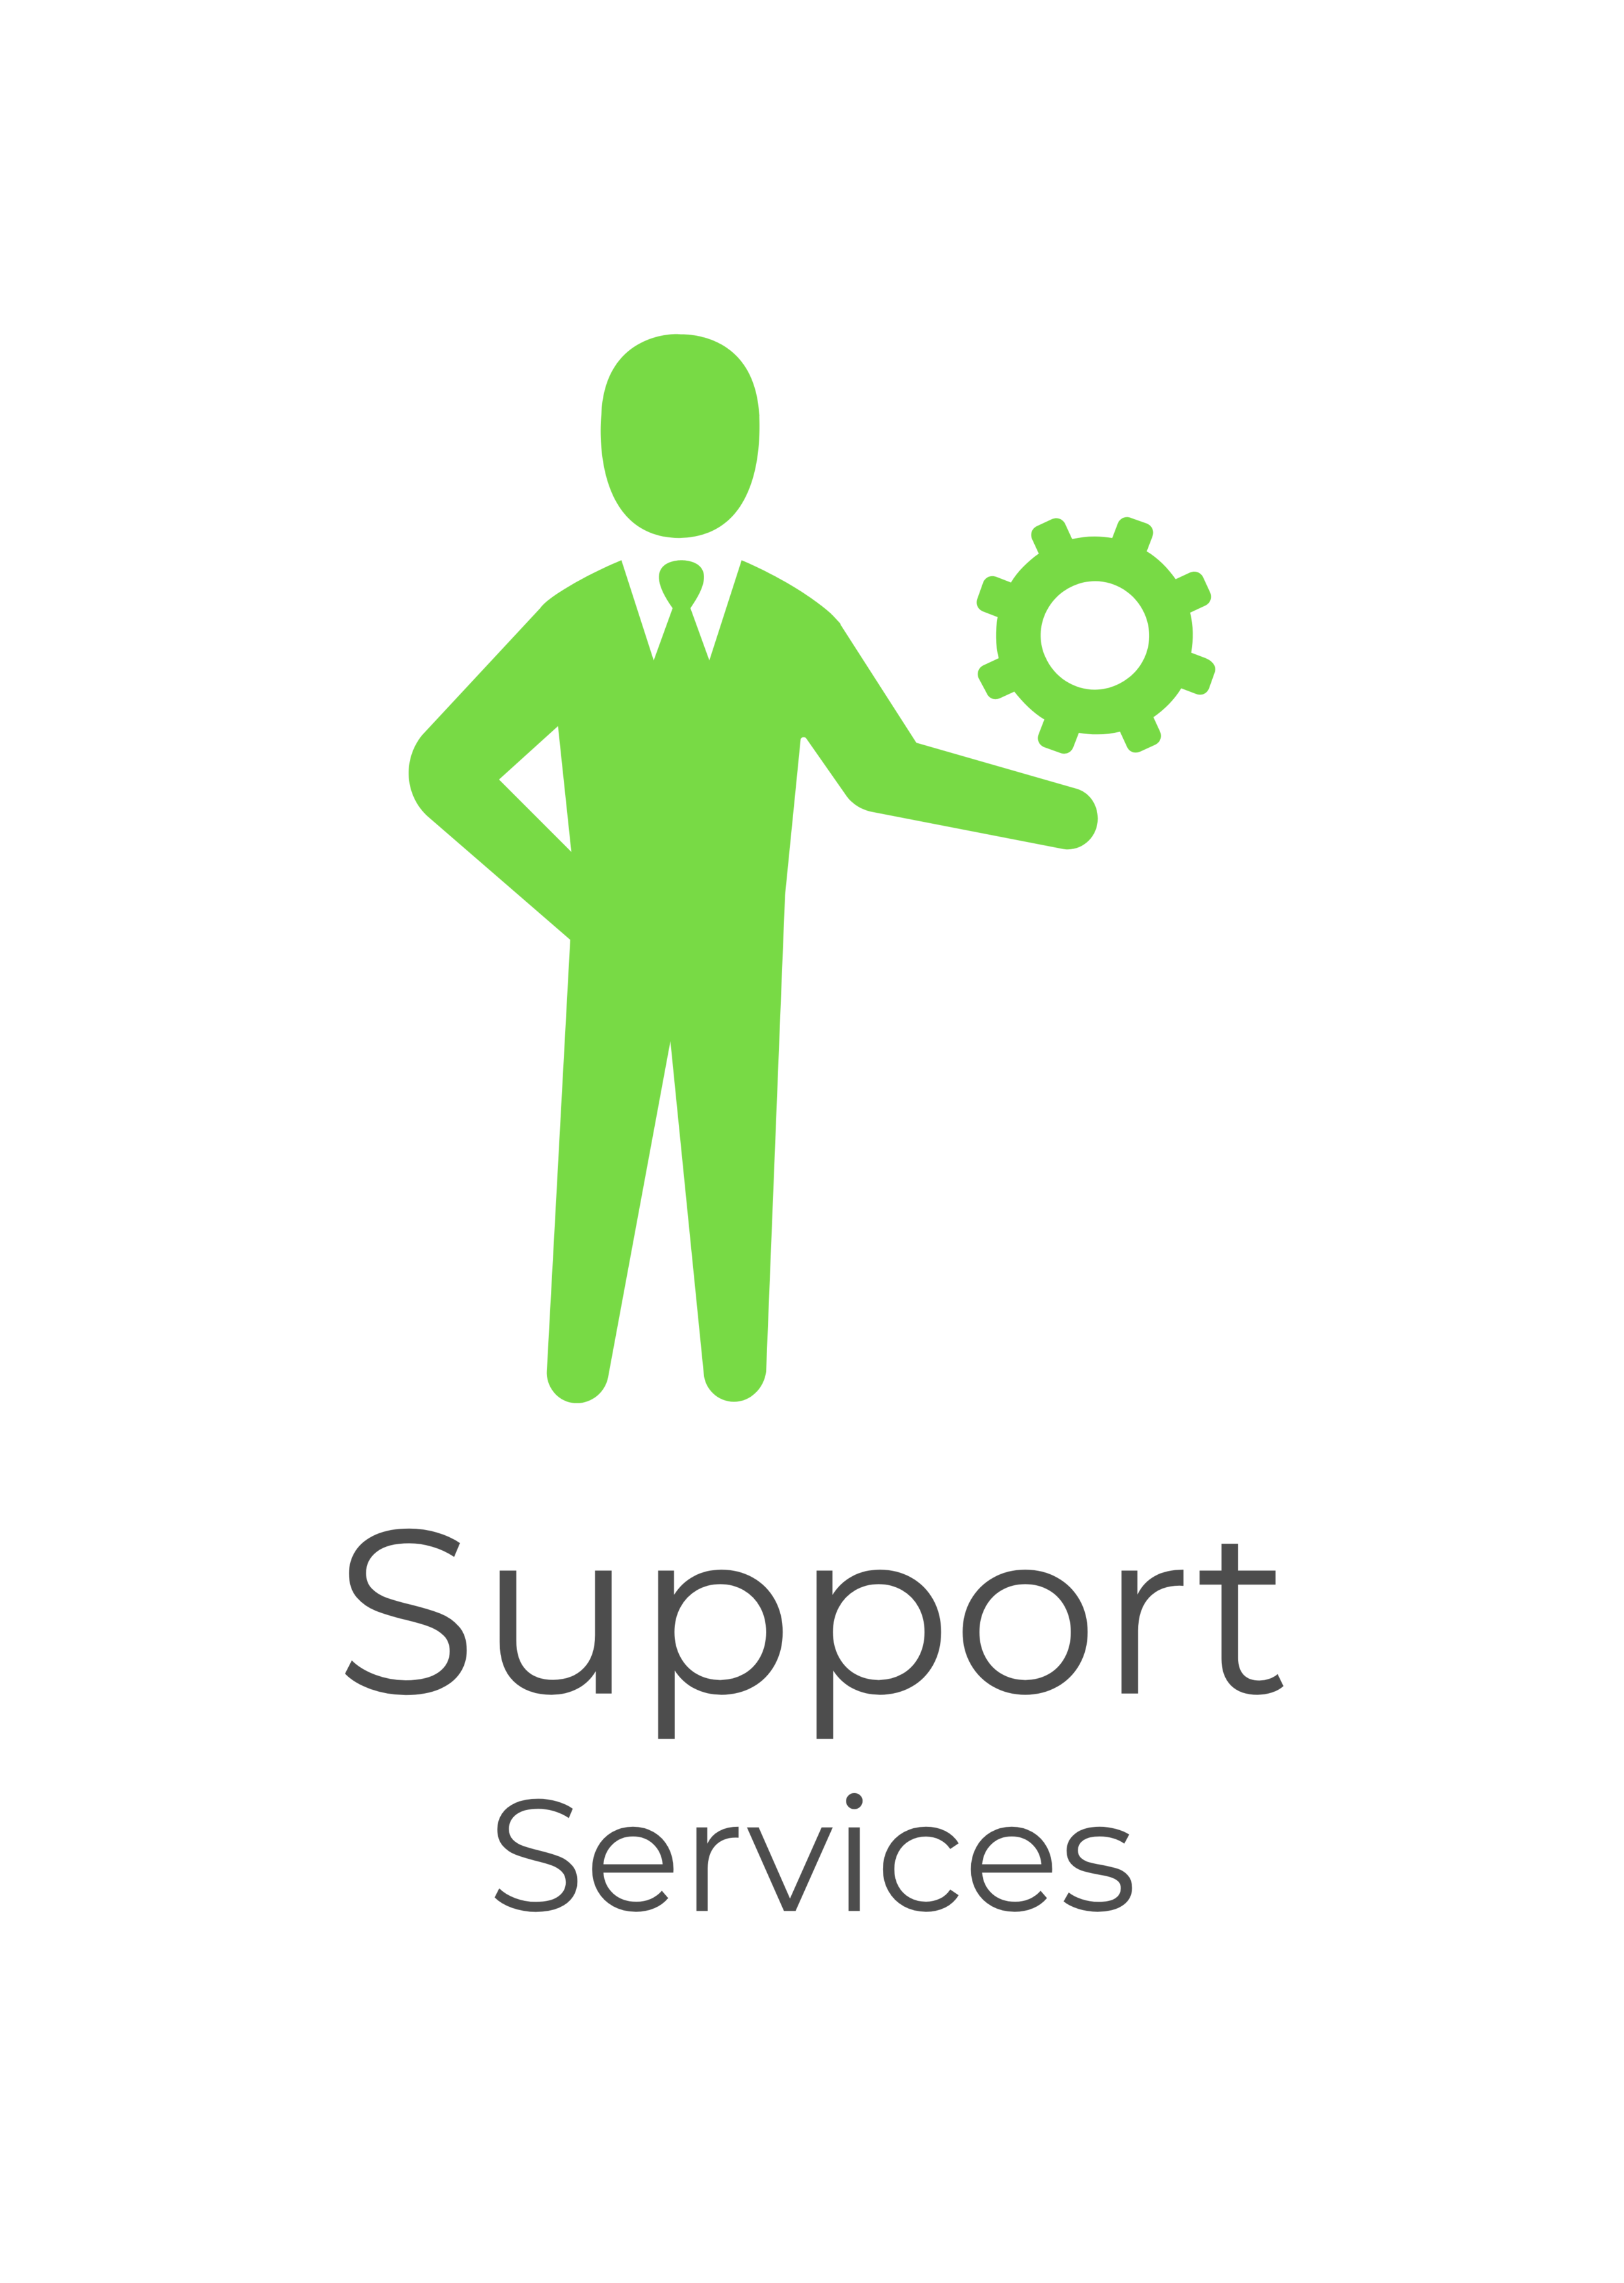 Call based Support   Email  based Support   Tickets  based Support